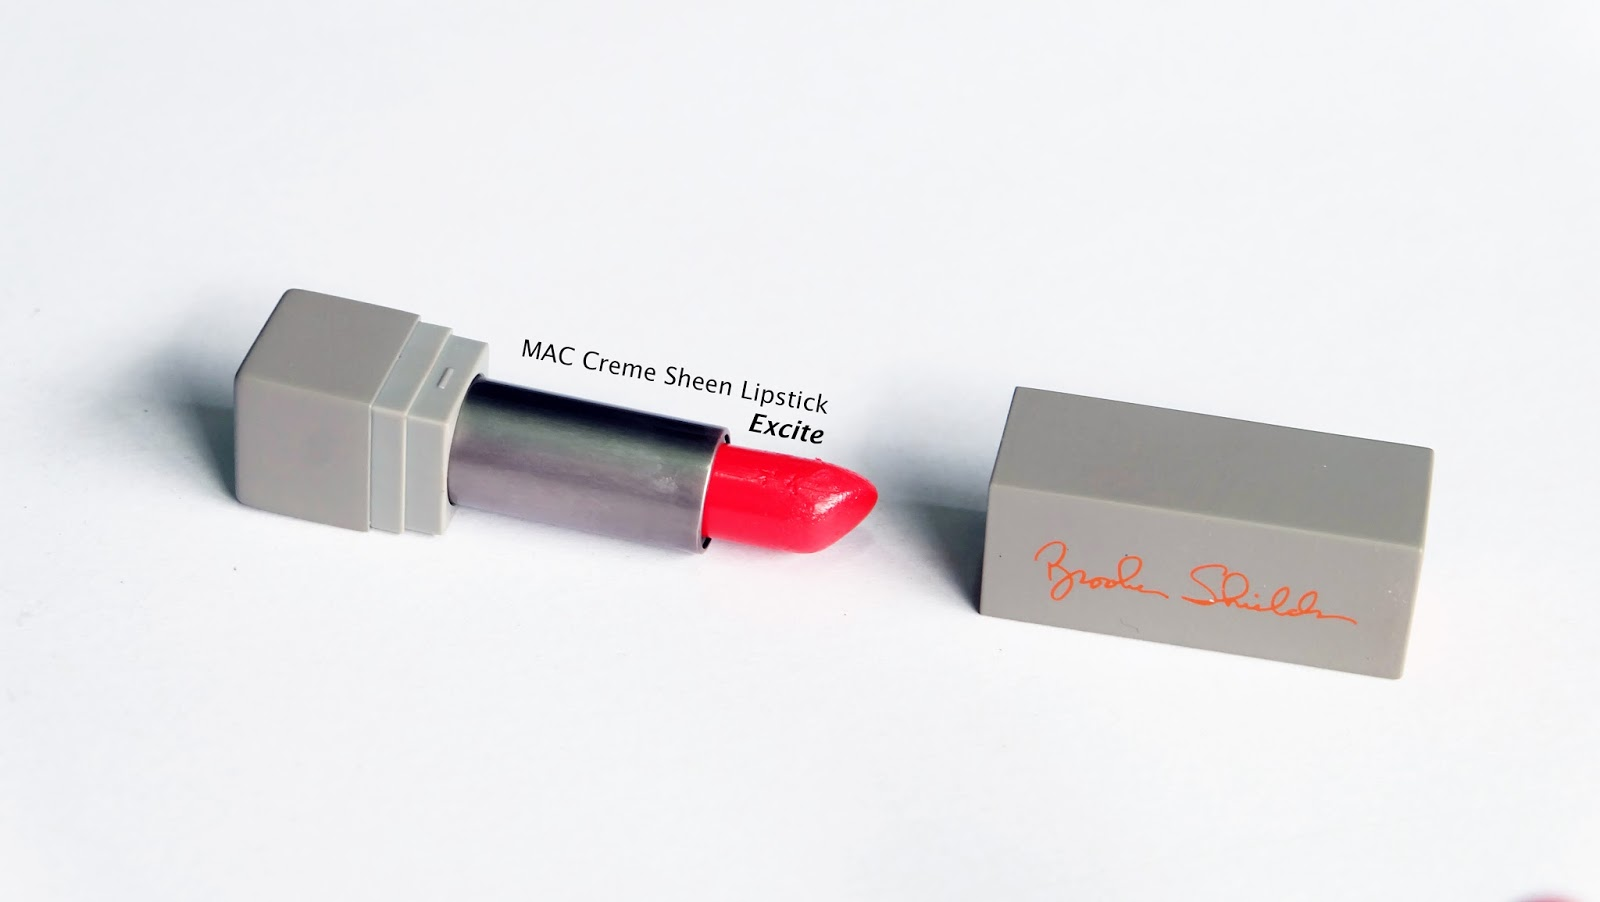 Best Orange Lipsticks swatches product review MAC Brooke Shields Excite